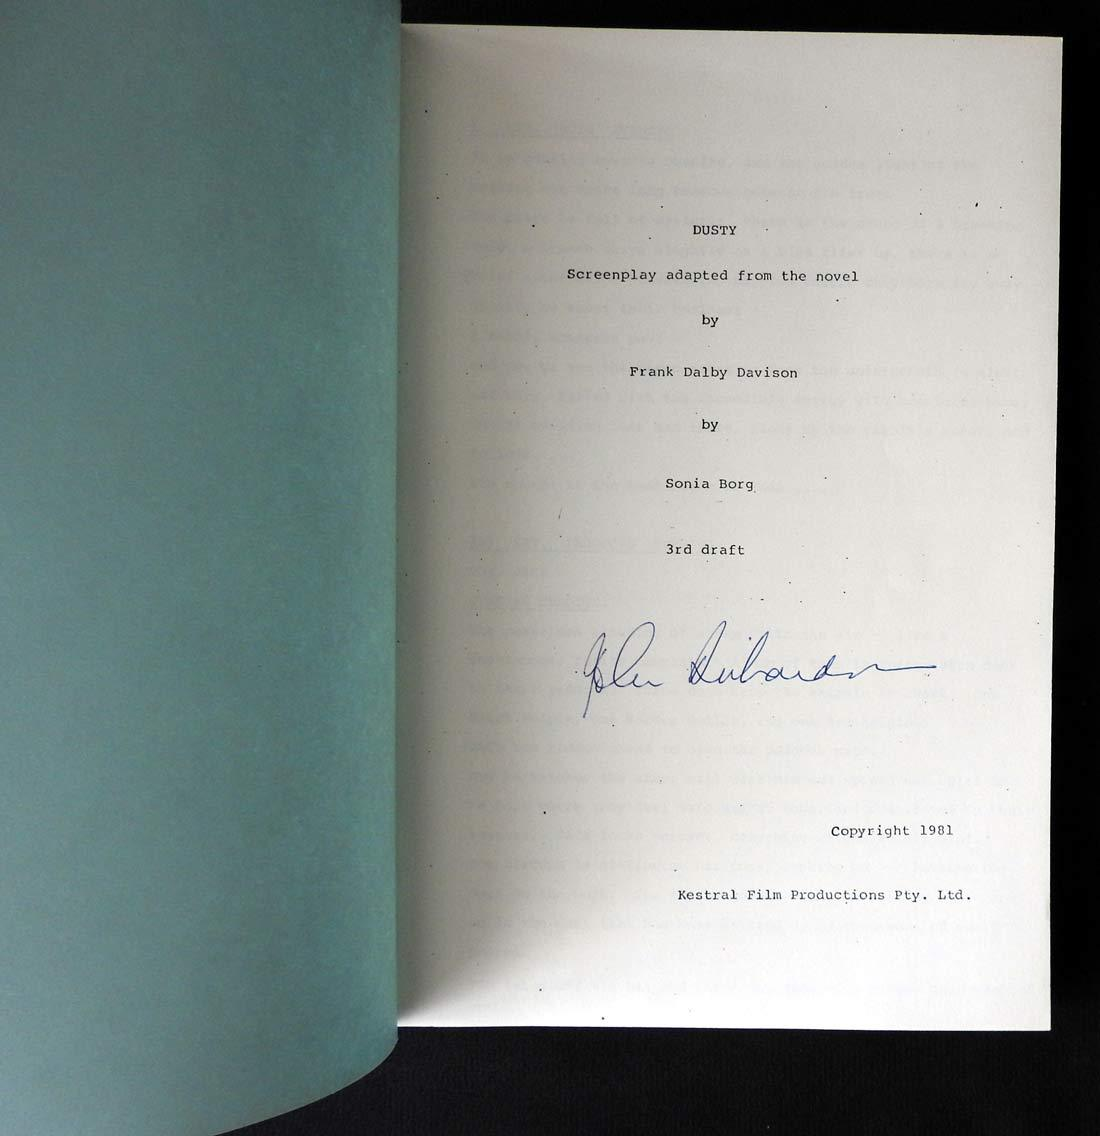 DUSTY Original Australian Movie Script Signed by the Director